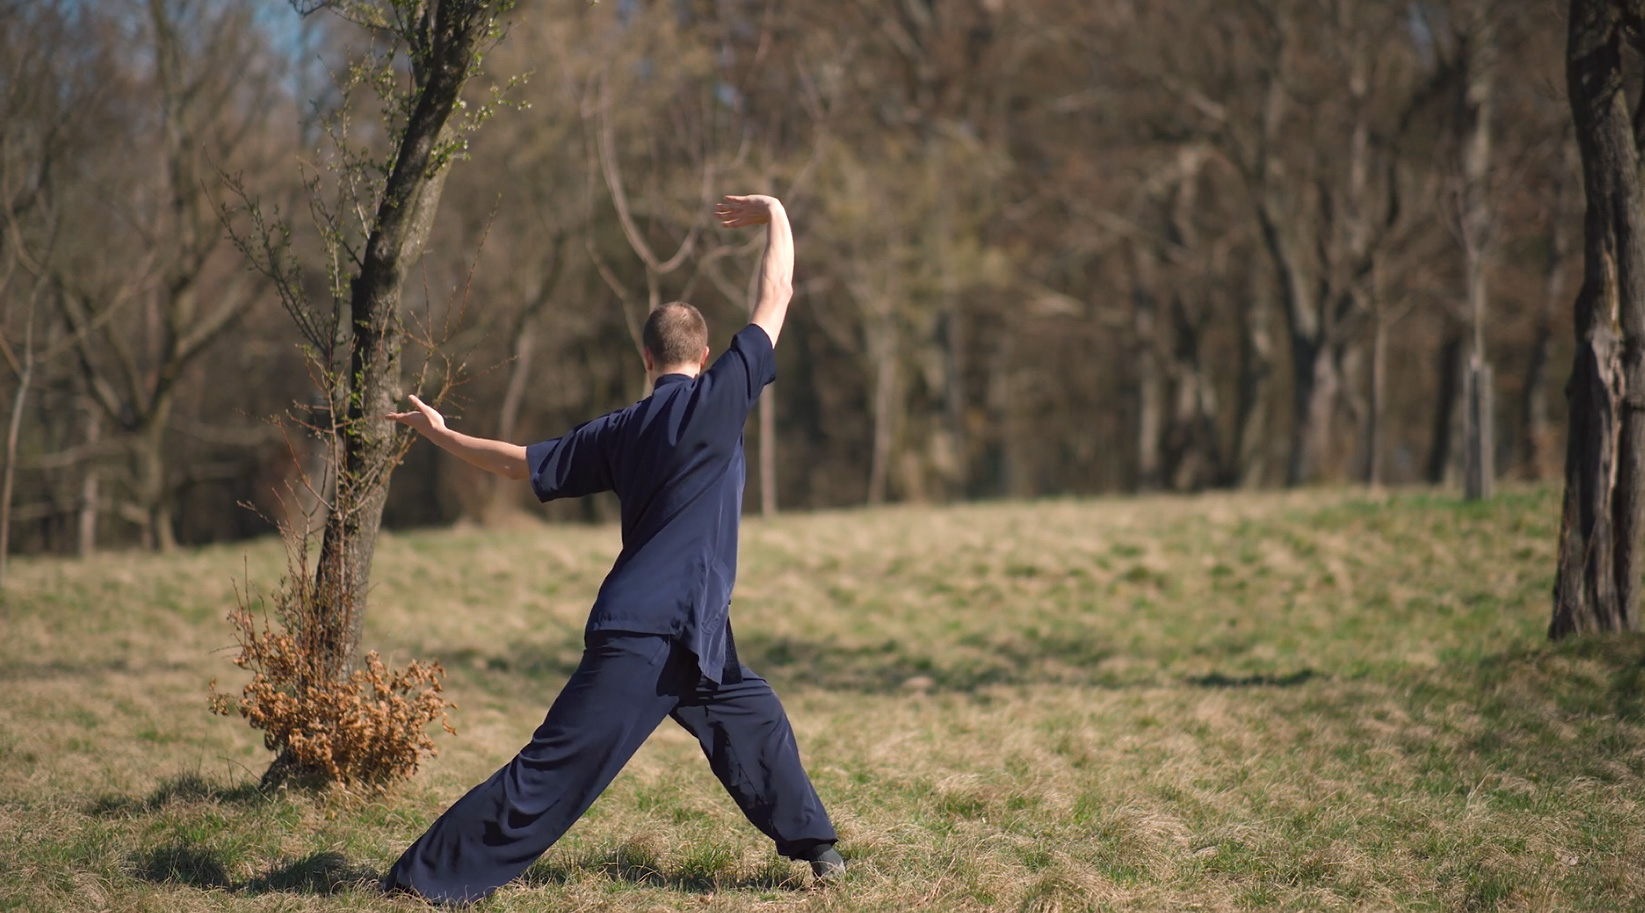 The Best Qi Gong Form Now In Times of Corona Virus